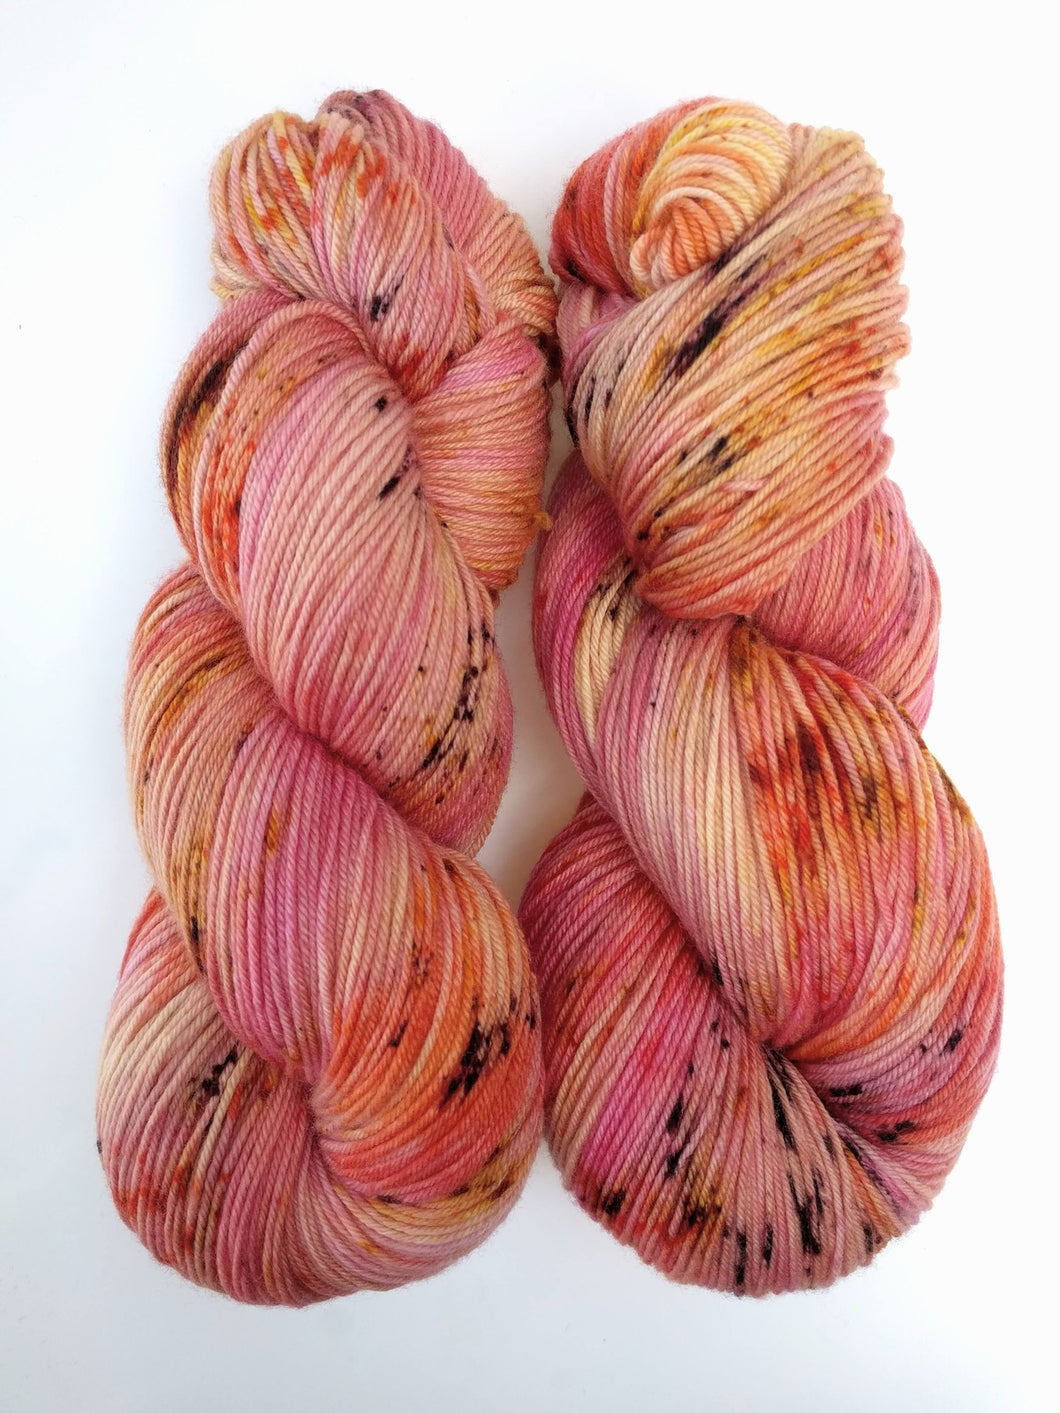 BECKONING SUNSET- Merino Twist